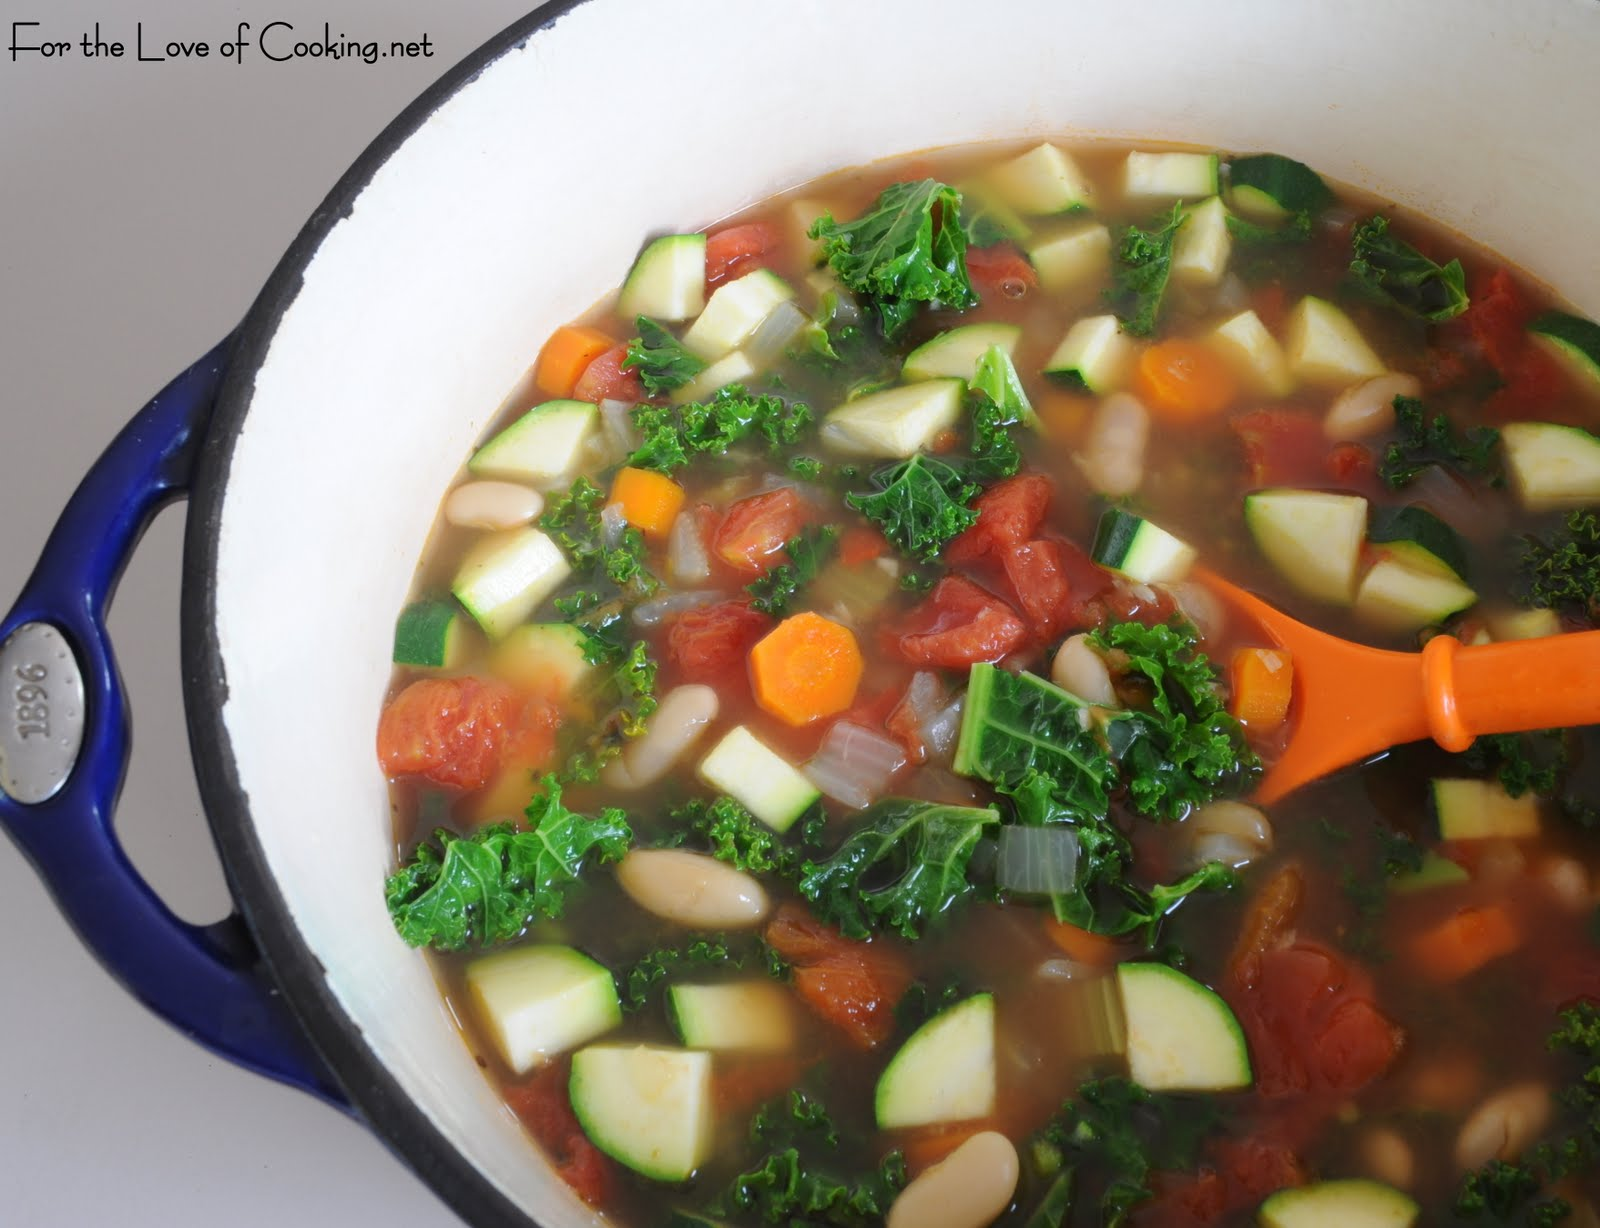 For the Love of Cooking: Vegetable and Kale Soup